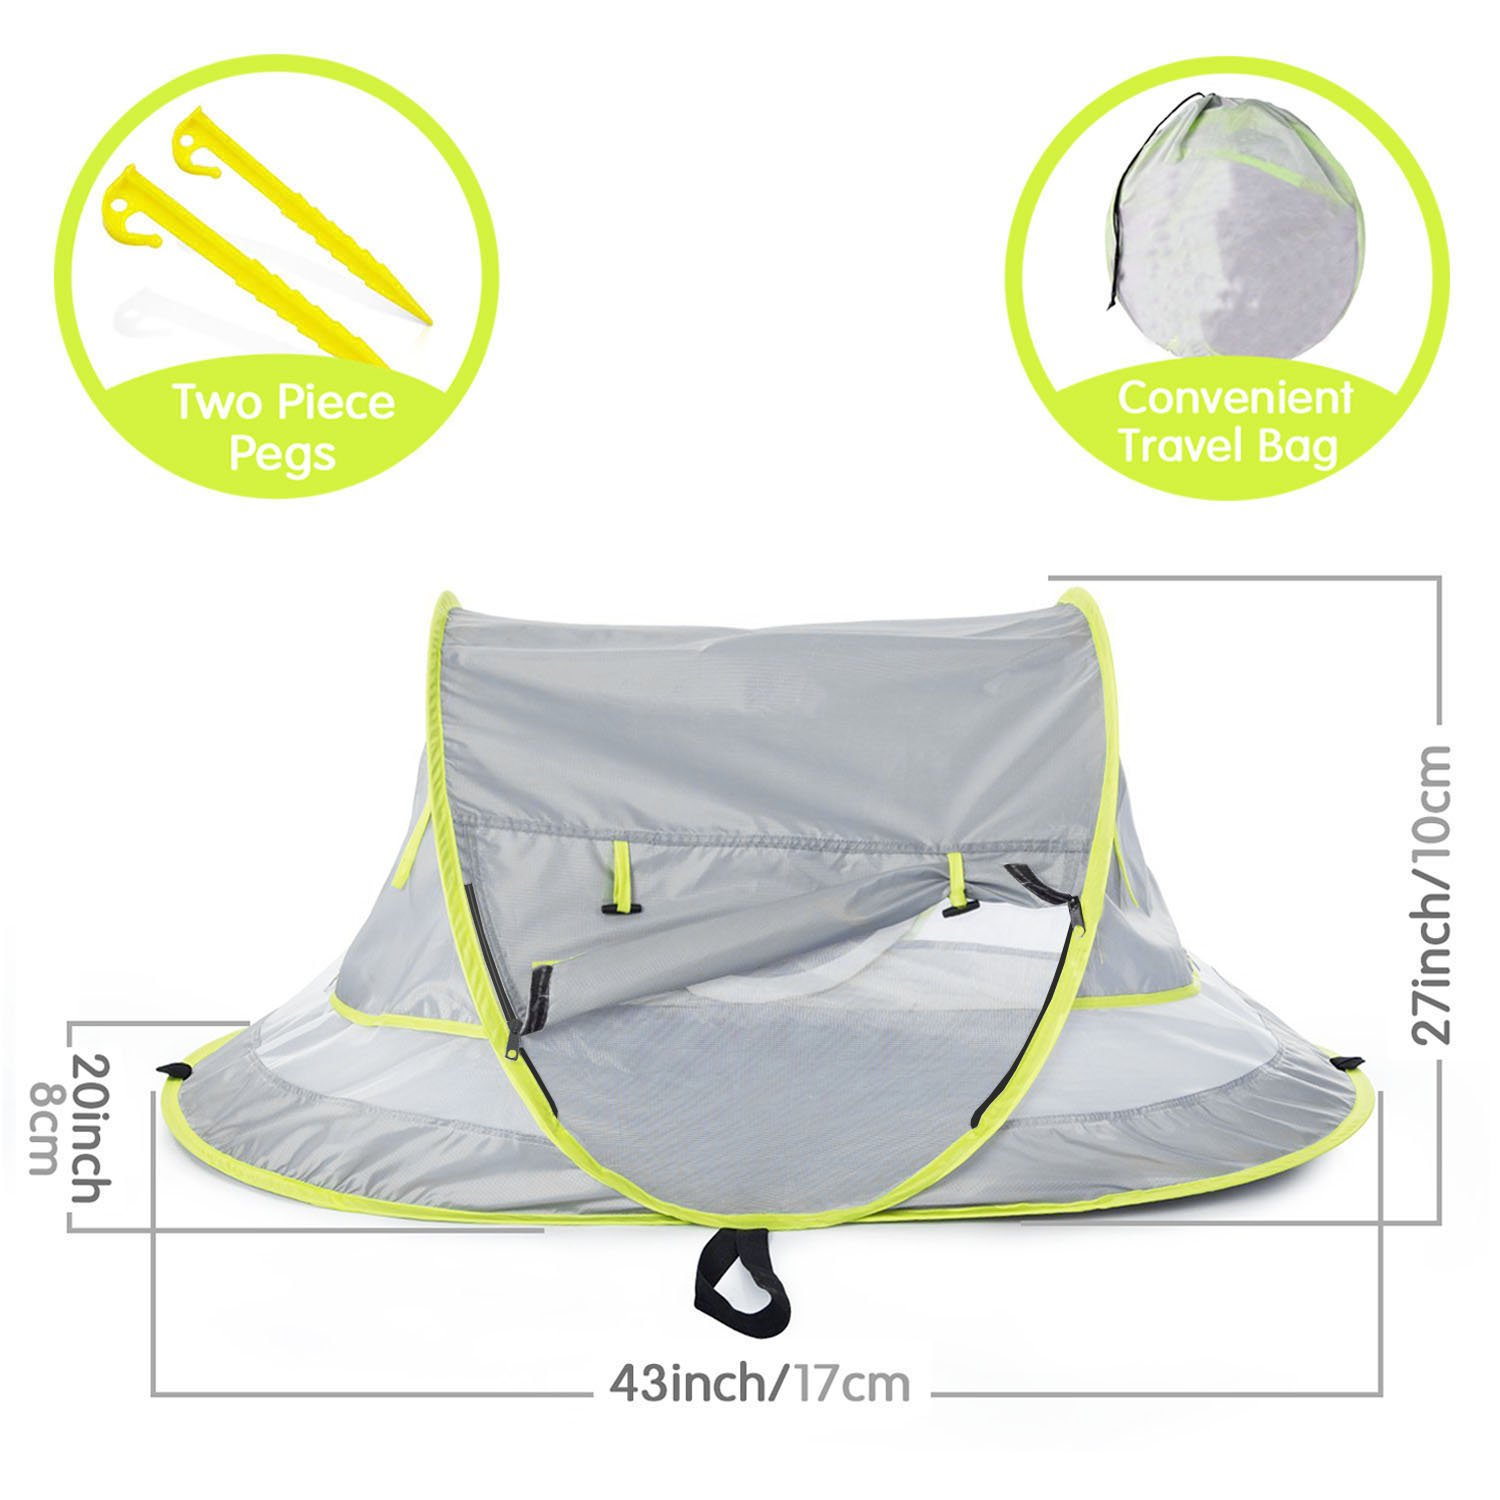 Micoo Baby Travel Tent, Portable Beach Pop Up Tent, Large Baby Travel Bed,UPF 50+ Sun Travel Cribs Bed, Mosquito Net and Sunshade, Lightweight Outdoor Travel Baby Crib Bed for Infant and Babies by Micoo (Image #3)